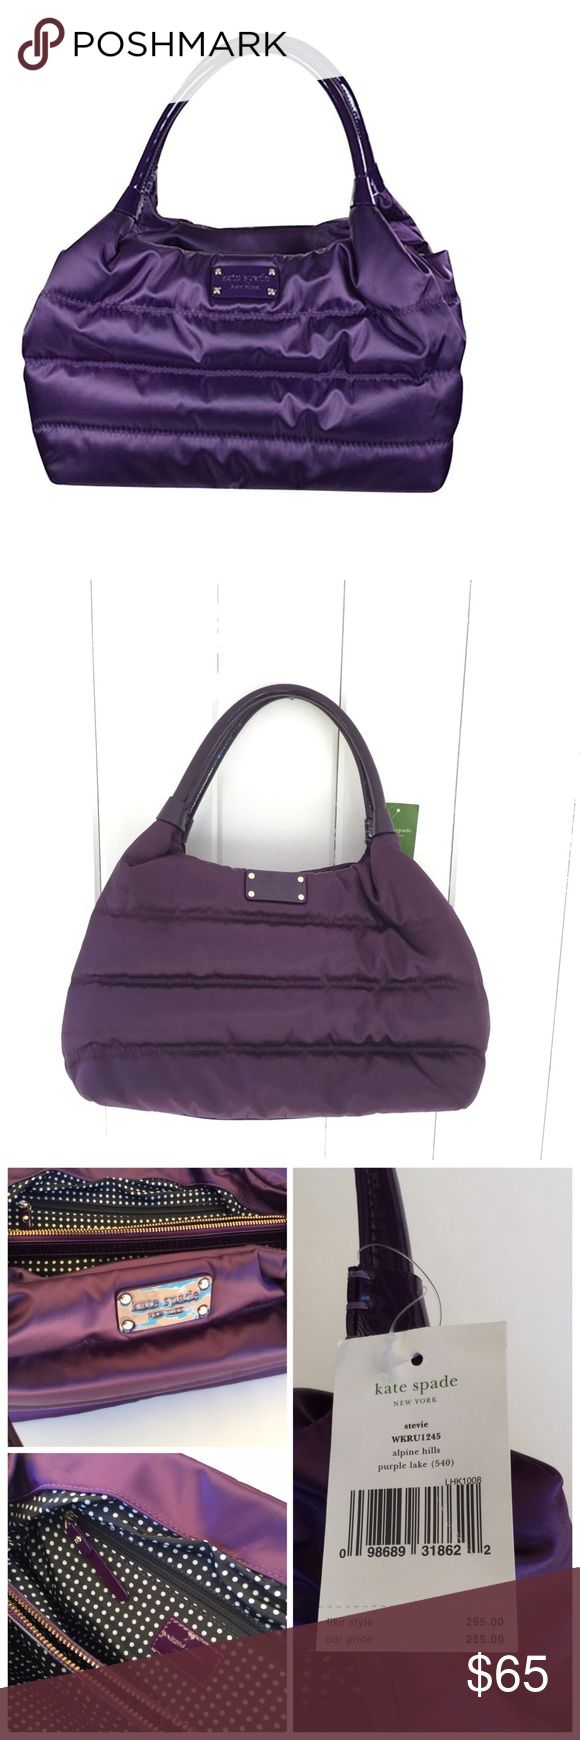 """Kate Spade Stevie bag in Alpine Hills Purple Lake NWT Kate Spade Stevie in alpine hills purple lake. Perfect for a gym bag, diaper bag, or purse! Measures 14"""" wide by 9"""" high by 6"""" deep. 7"""" strap drop. Two interior sections separated by a zipper pocket, plus two interior slip pockets. kate spade Bags"""